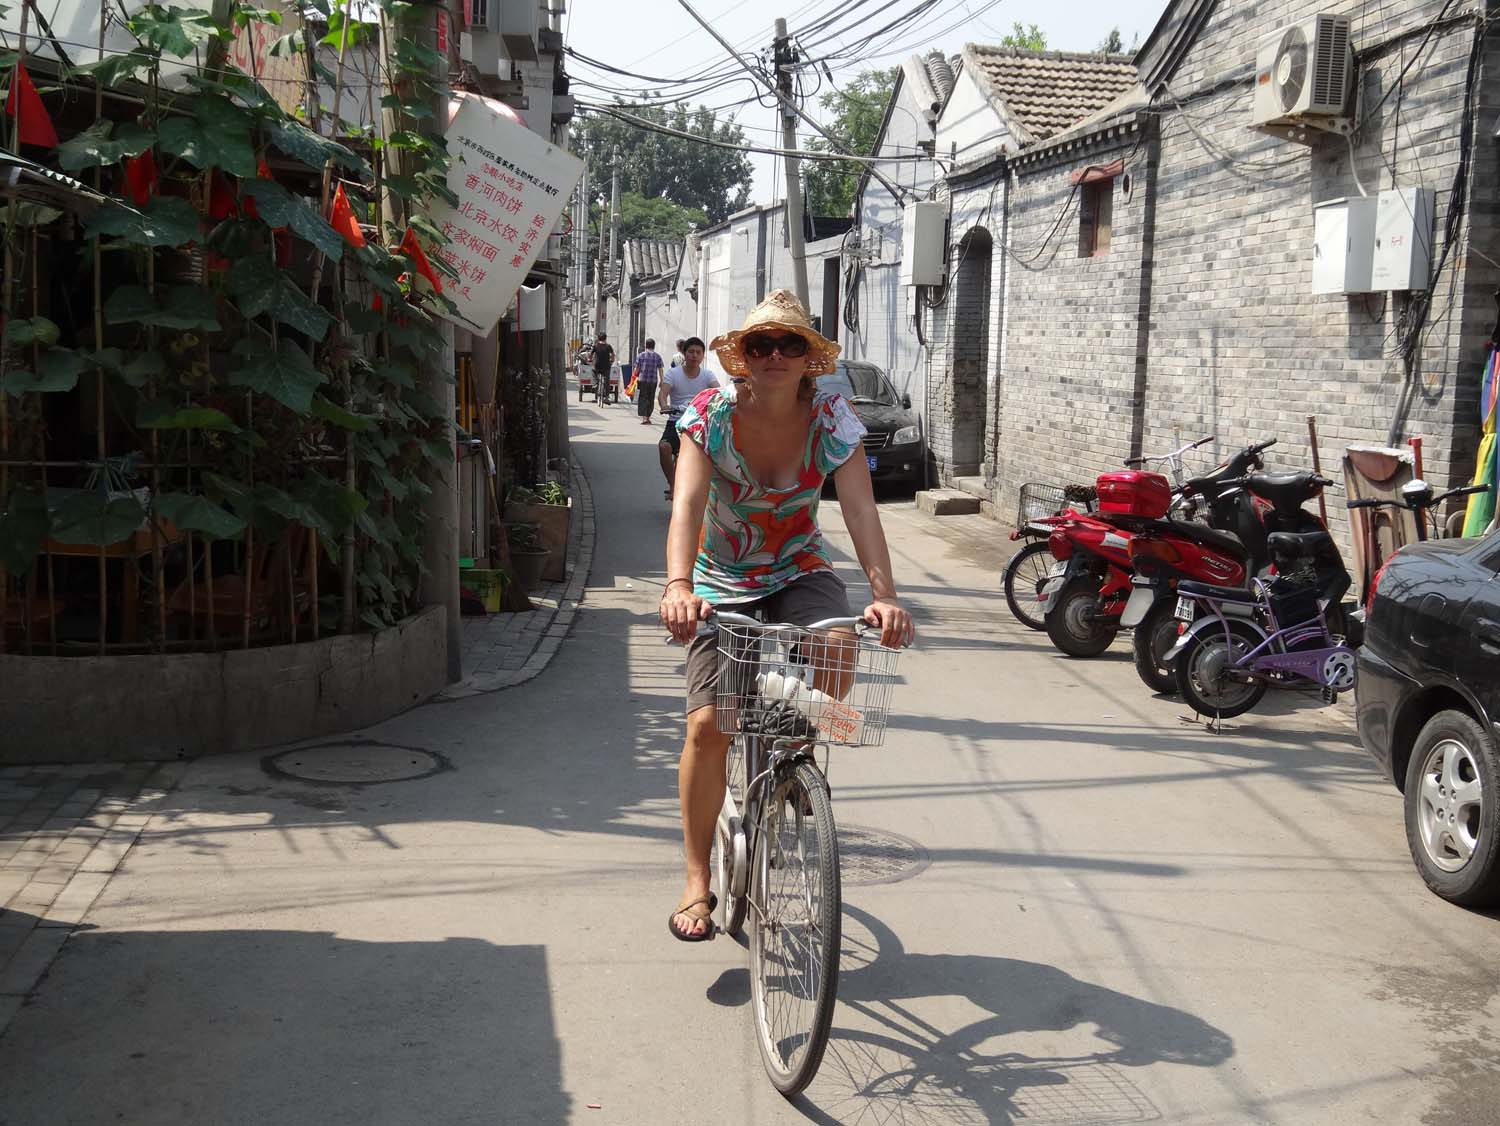 we love having our bikes with us, exploring Beijing with them was great.